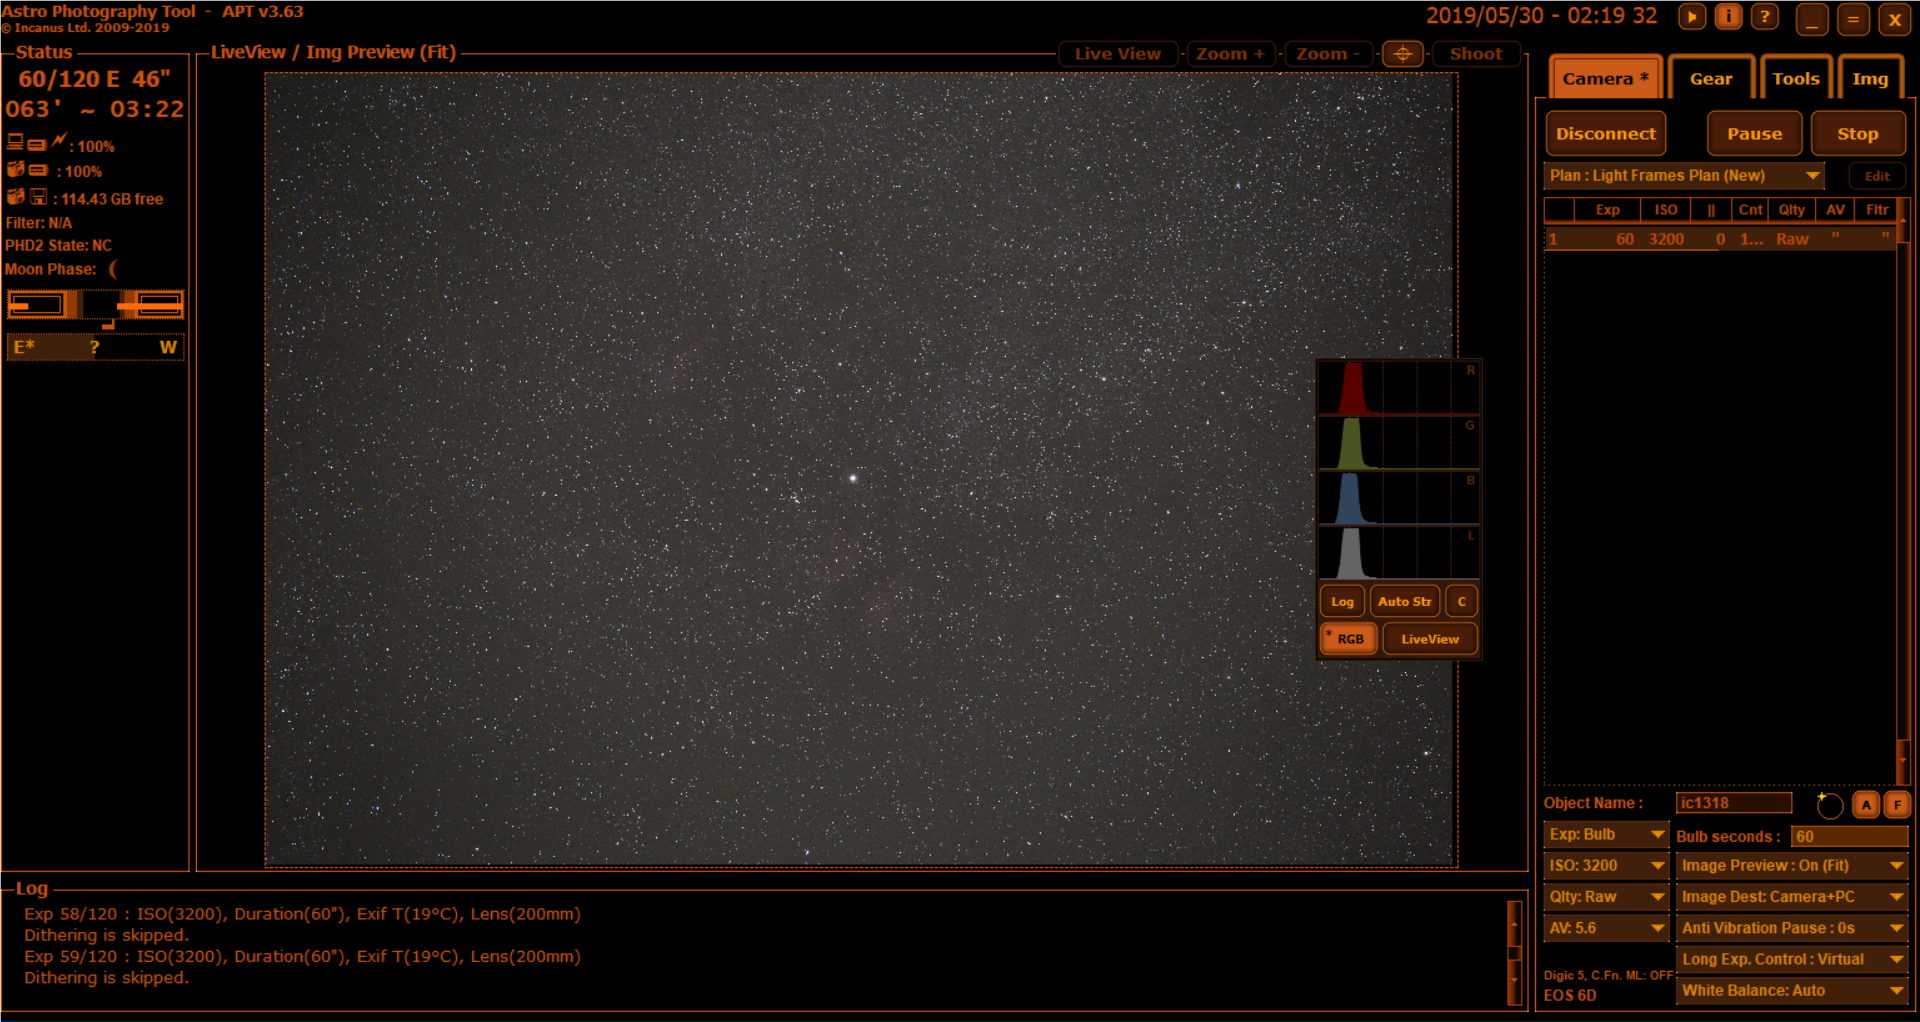 Capture-brute-ngc1318.PNG